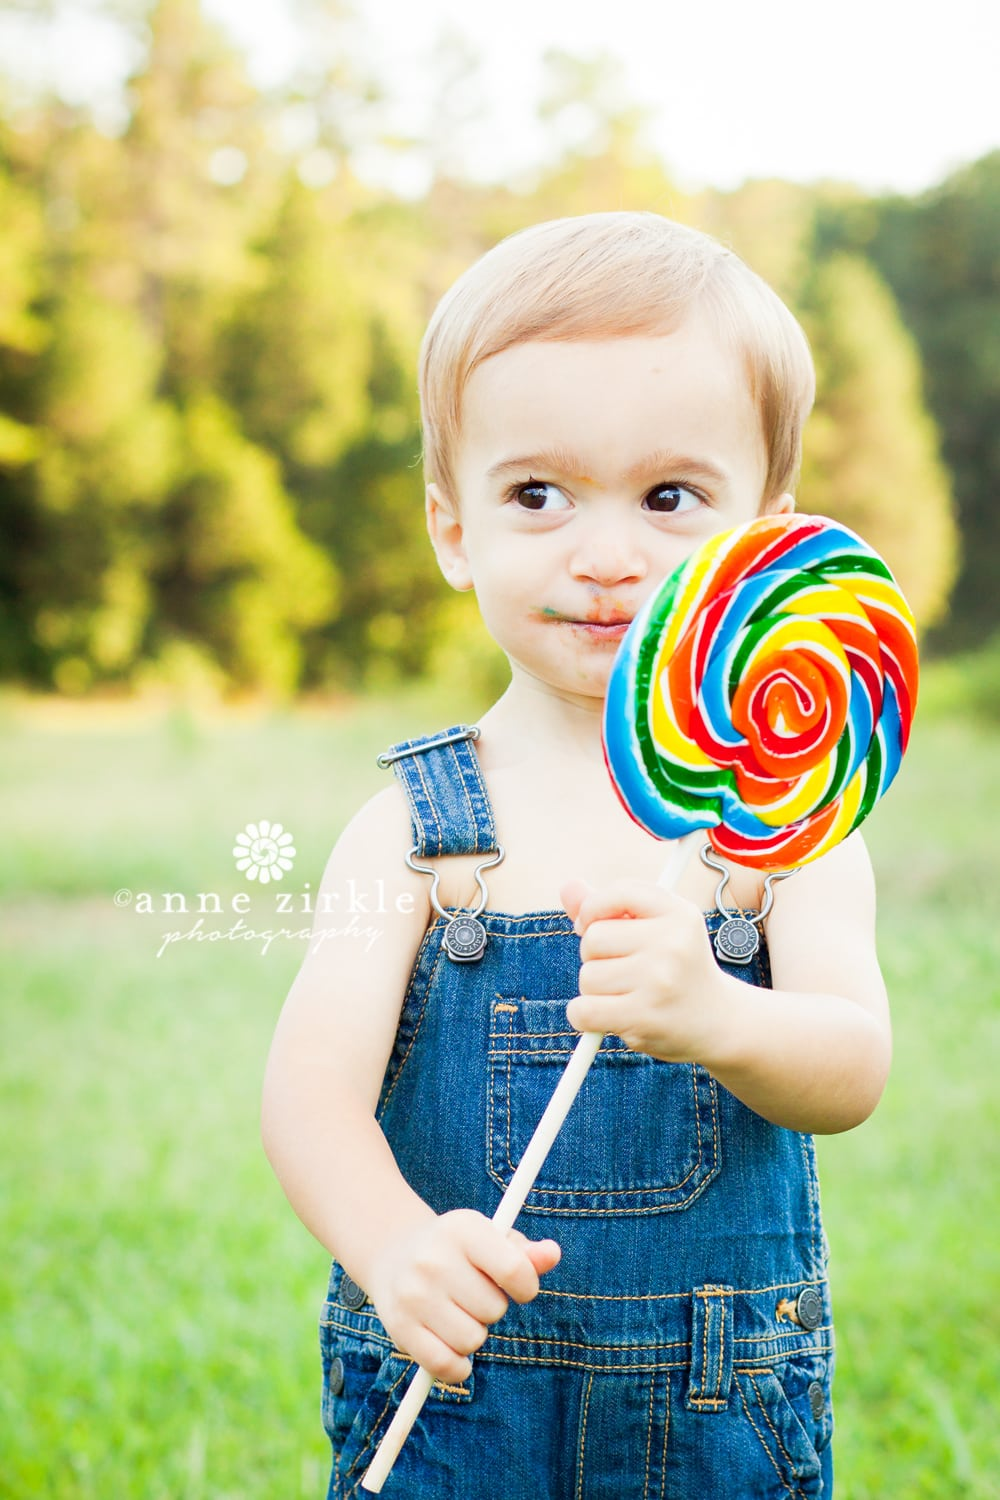 little-boy-eating-huge-lollipop